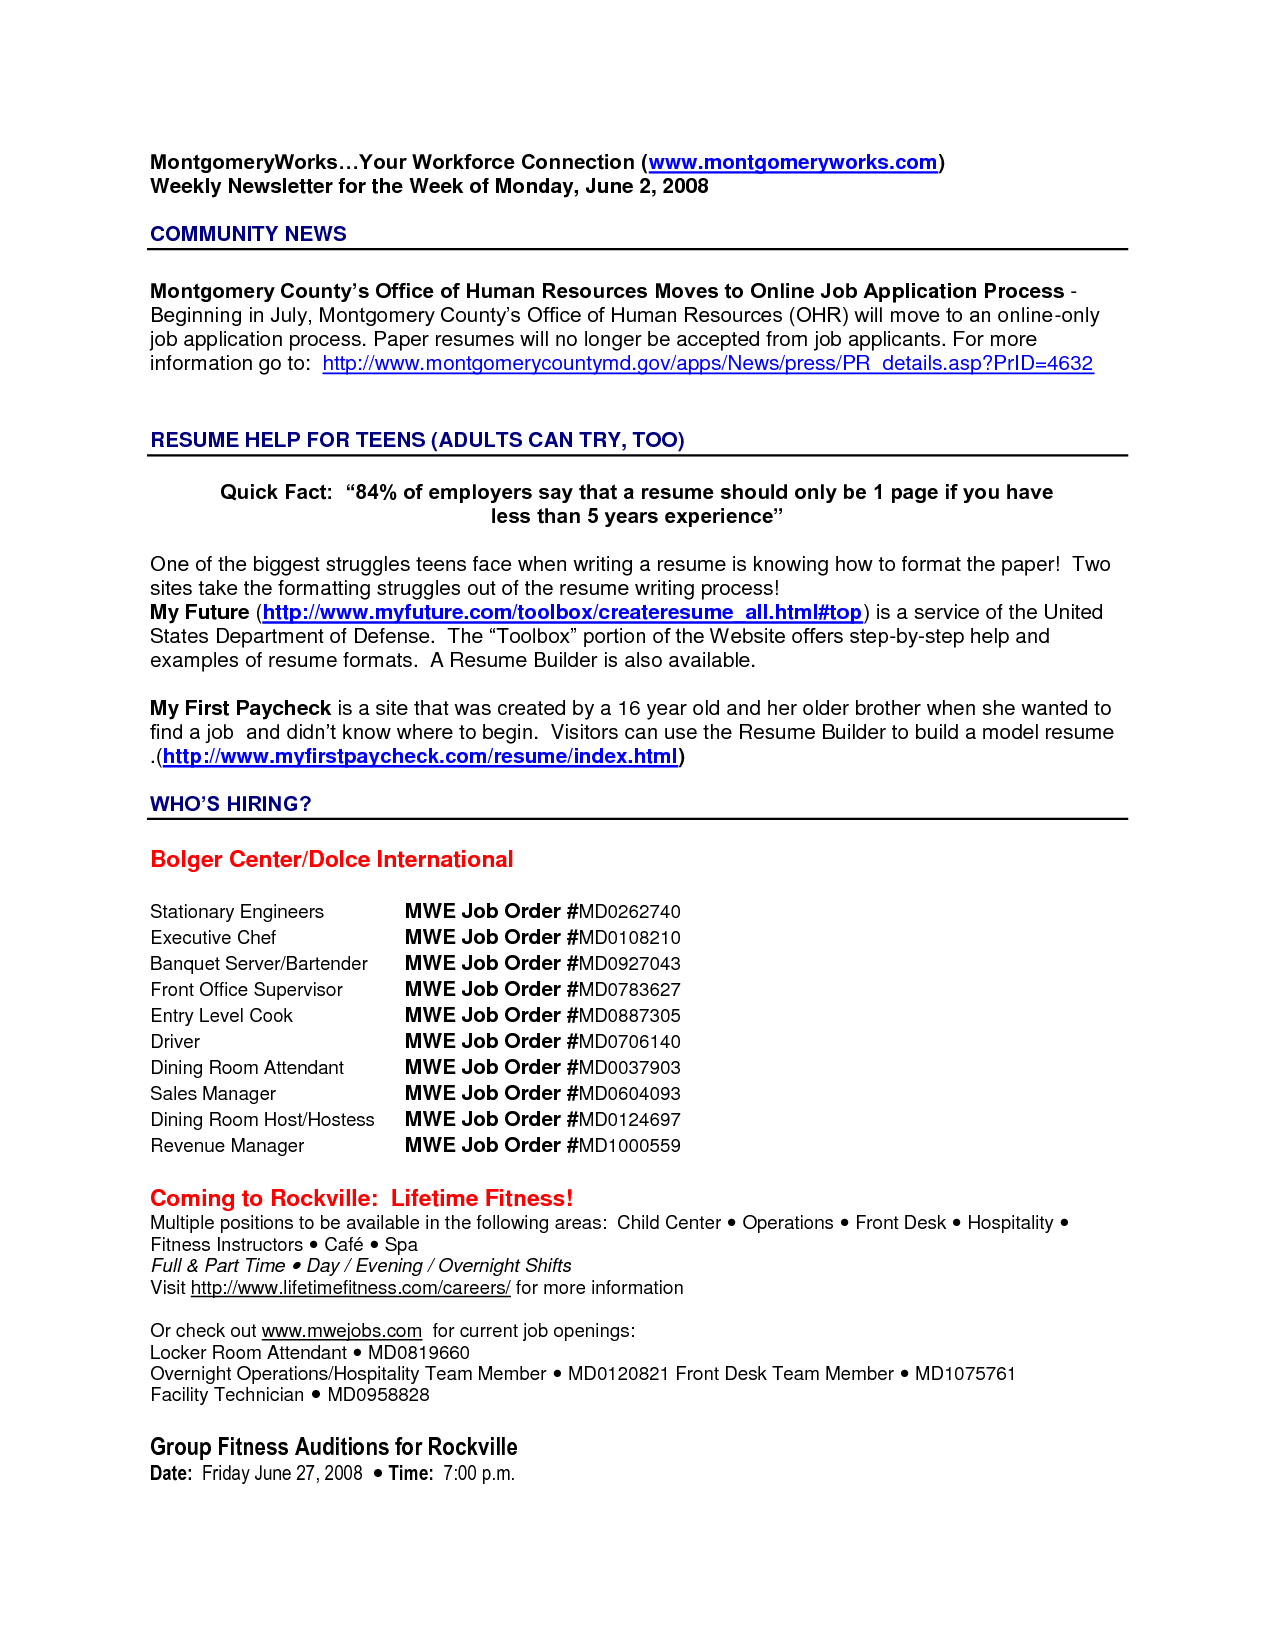 Waitress Resume Skills Serving Job Resume Examples Server Description Sample  Home